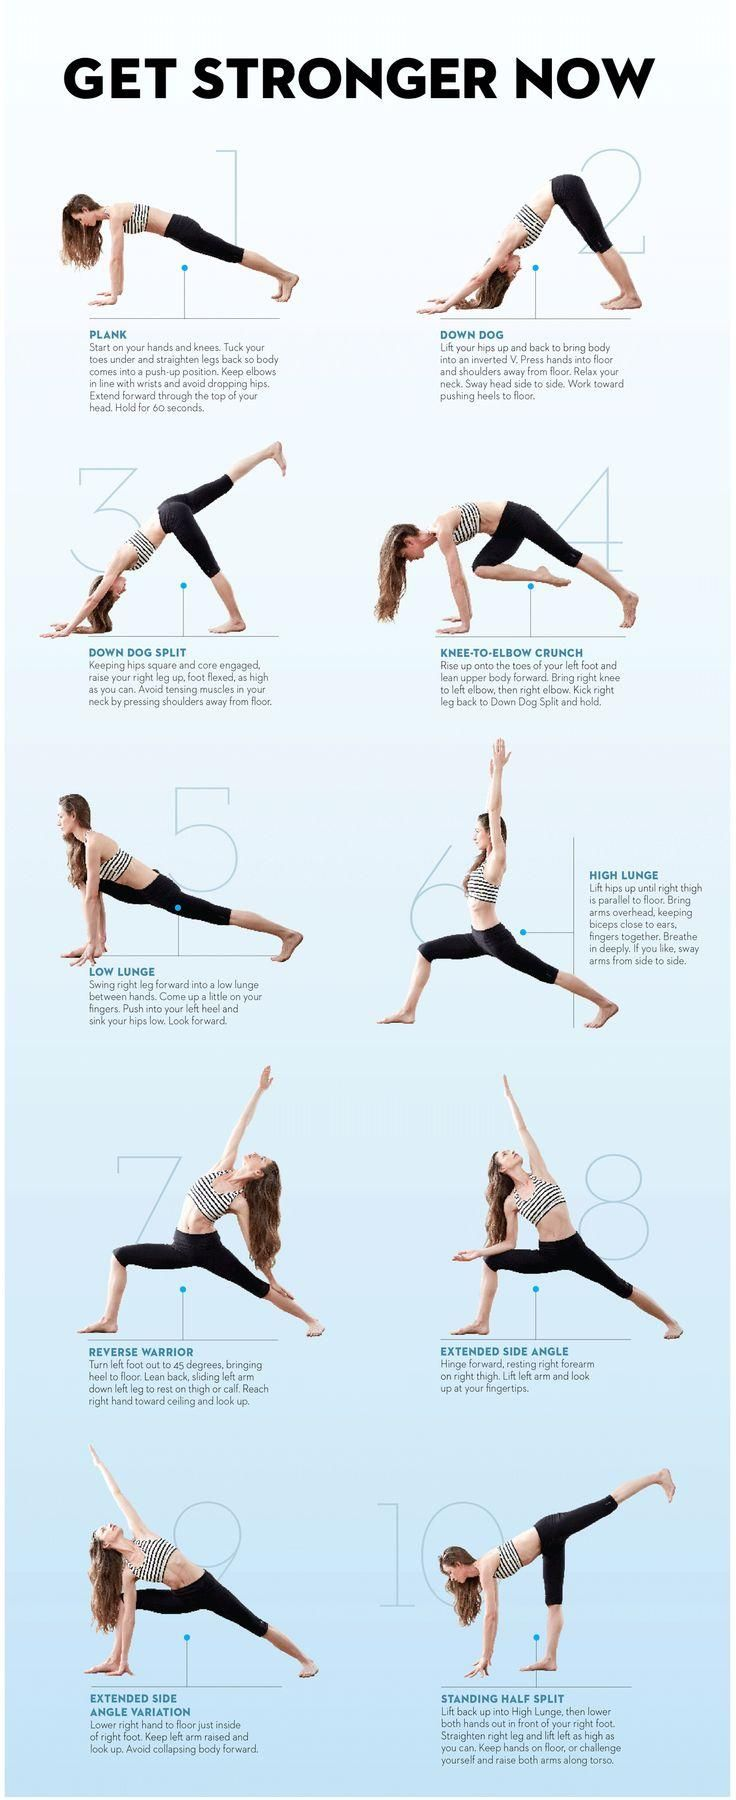 The best yoga workout to build strength from Tara Stiles - Do Tara's routine four times a week for a total-body, fat-blasting workout. Hold each pose for five breaths, unless otherwise noted. When you finish the sequence on the right side, repeat on your left. #FitLiving